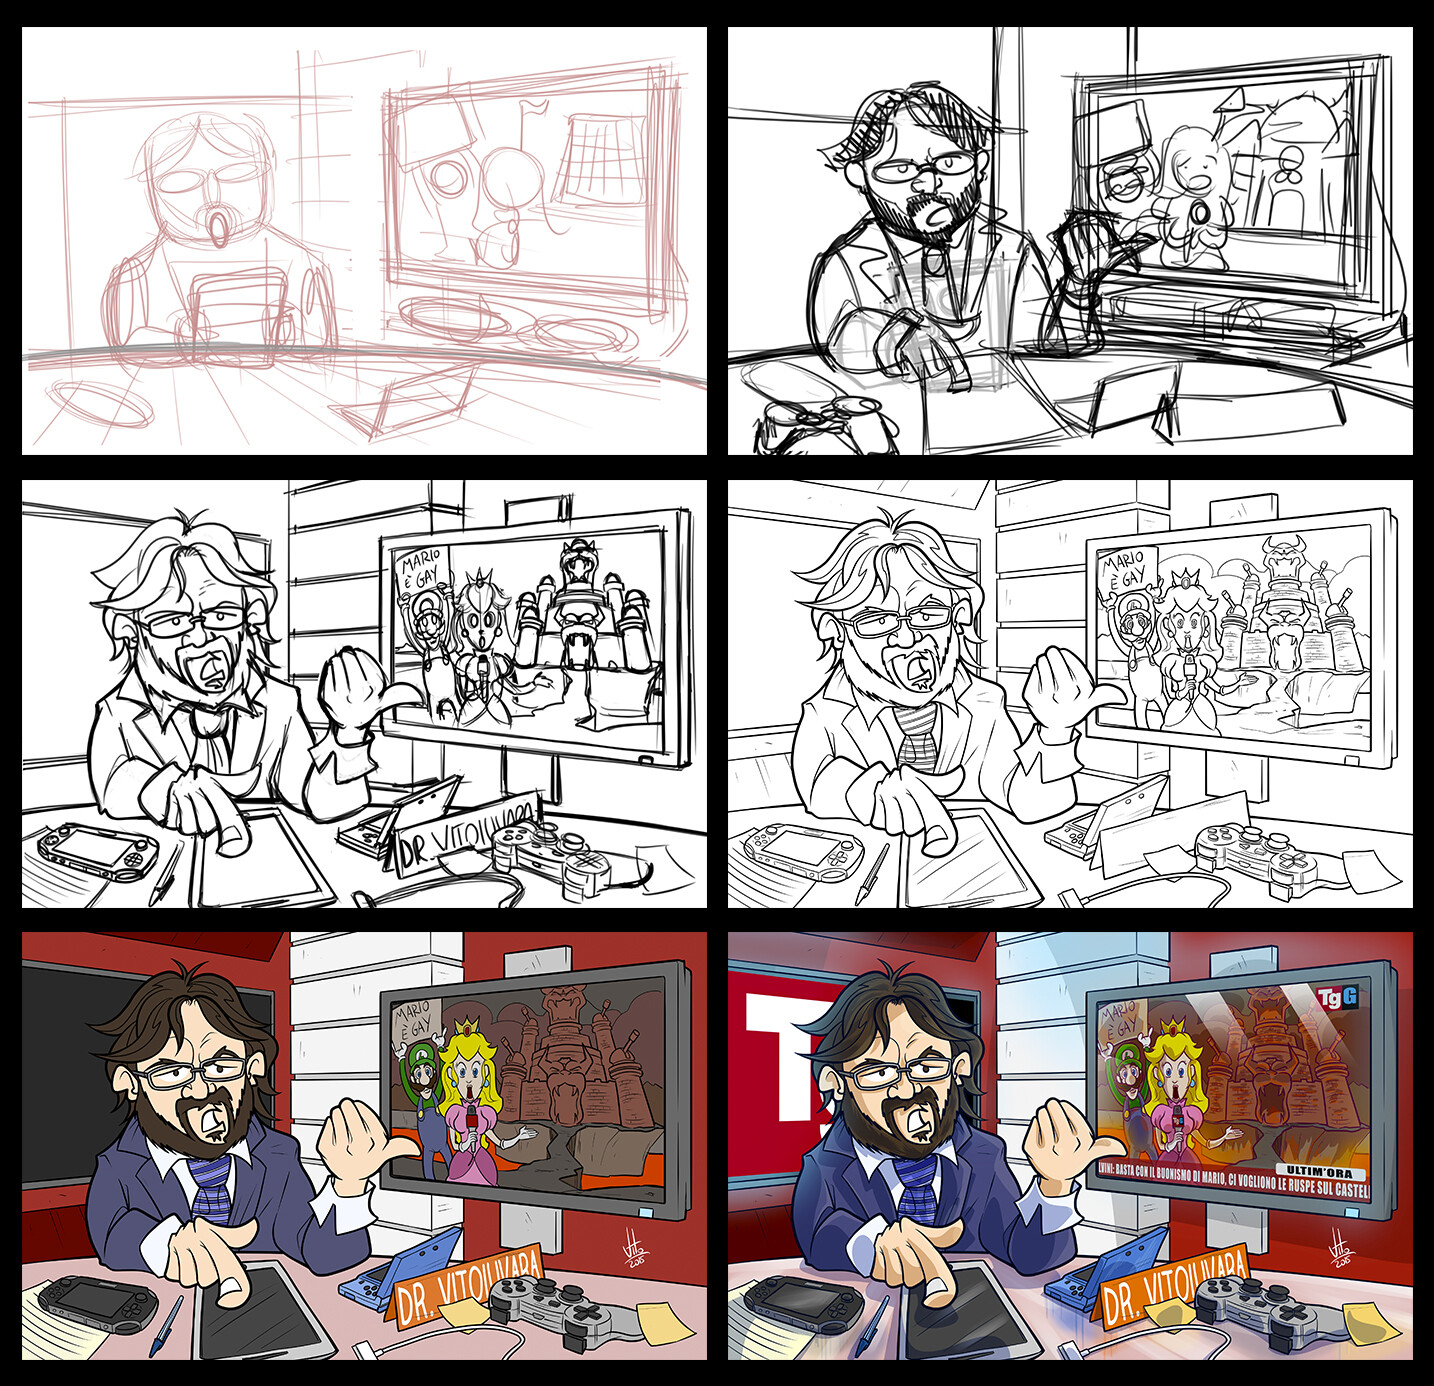 TG Gamers